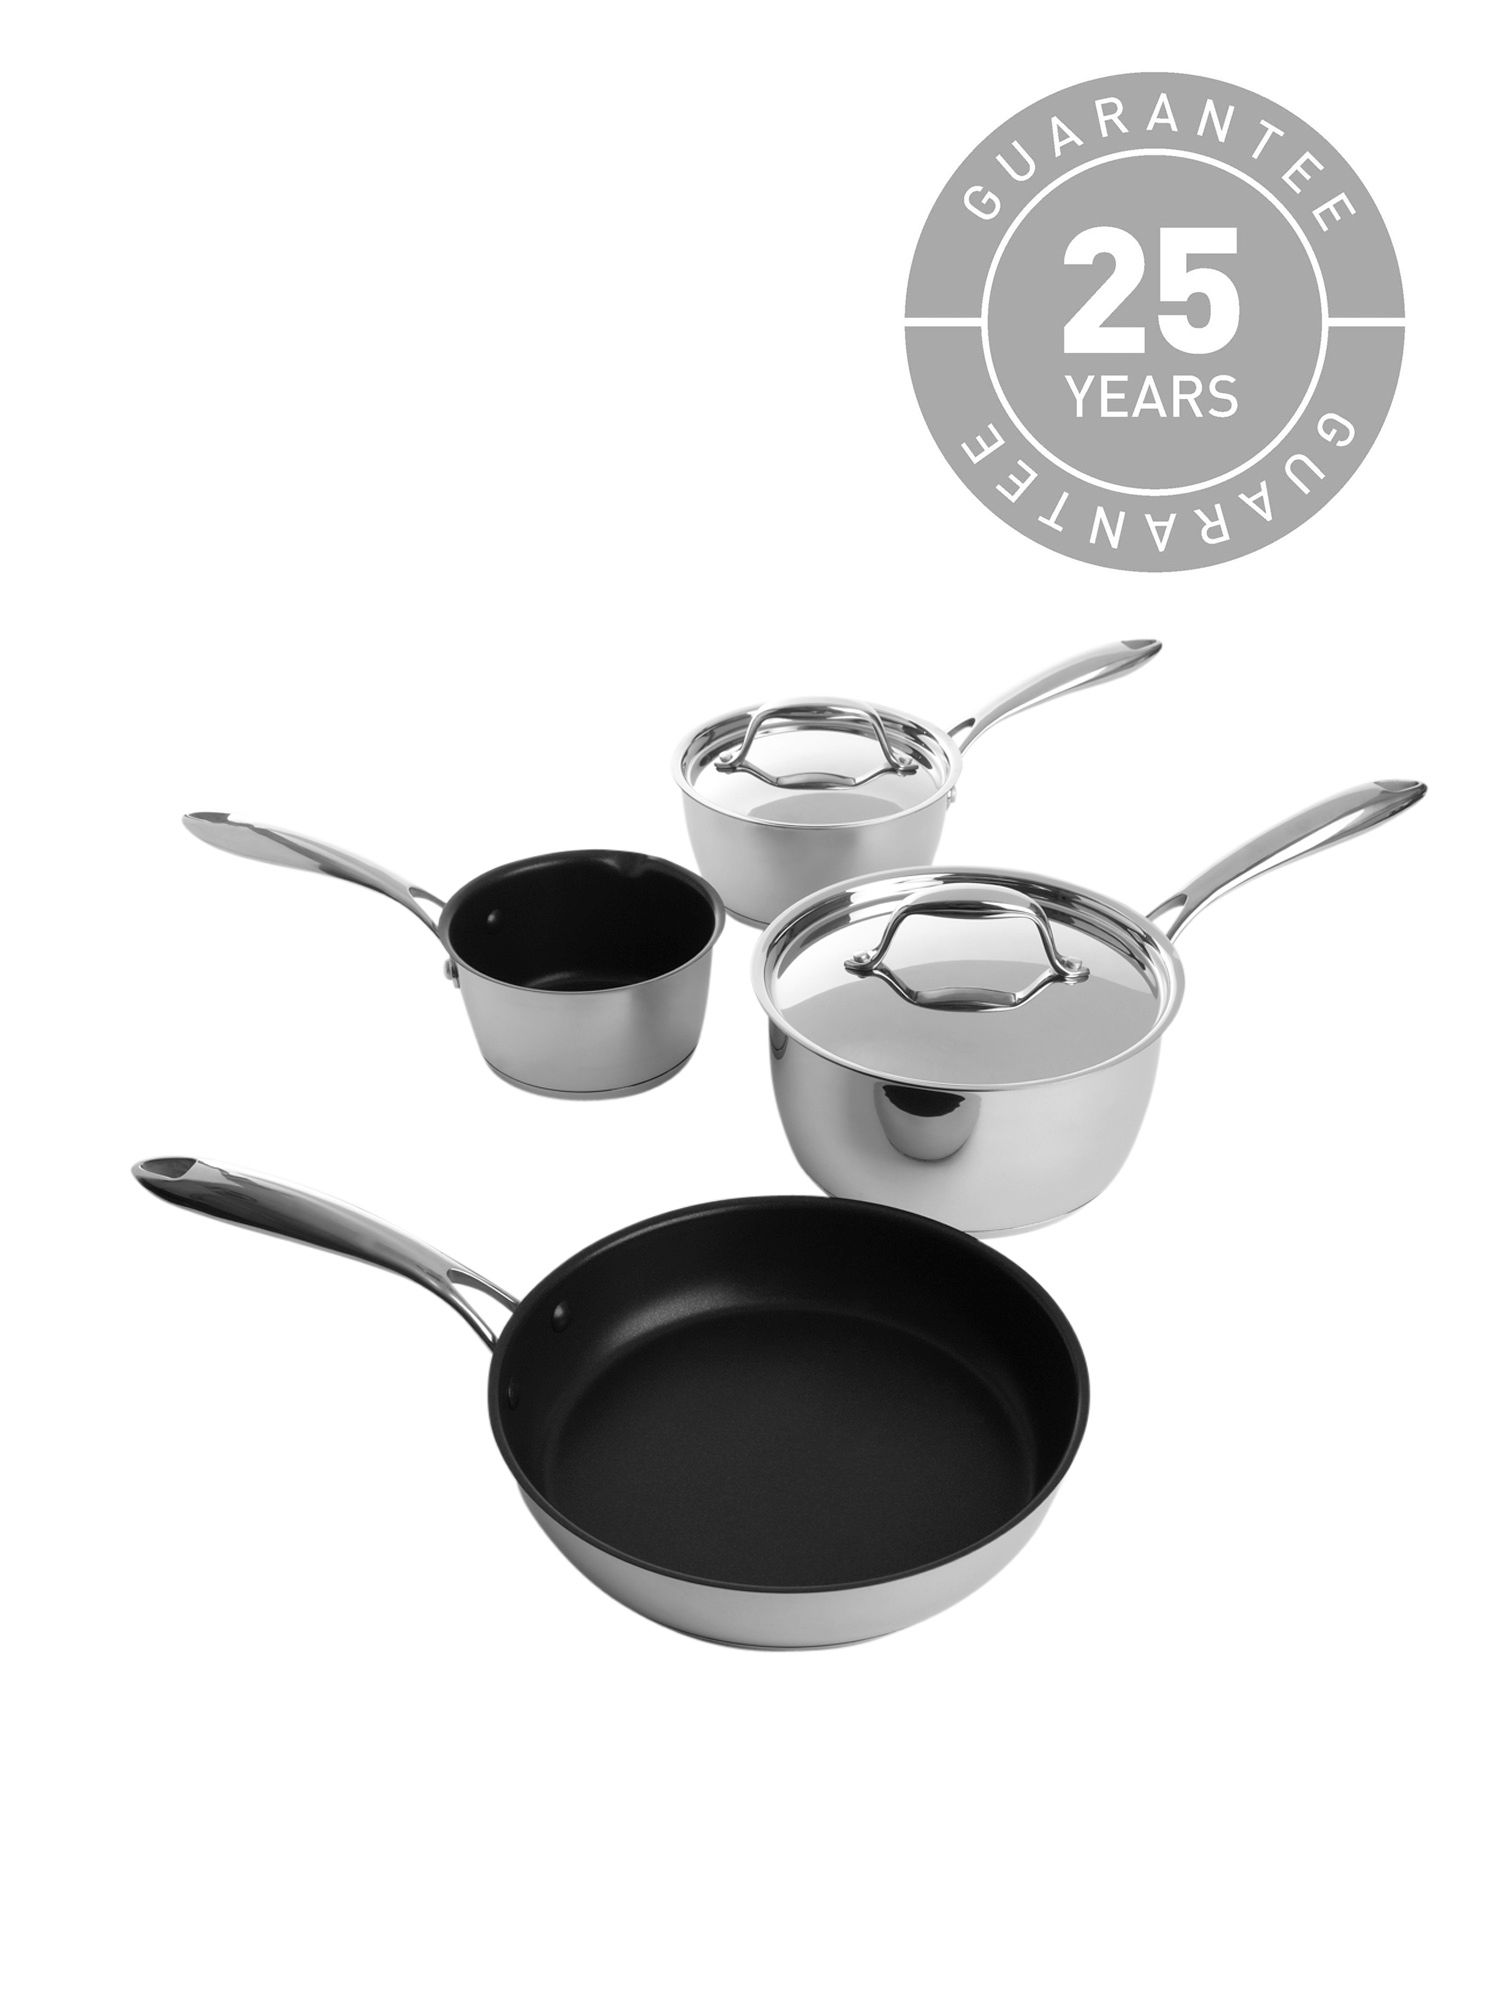 Connoisseur 4 piece pan set